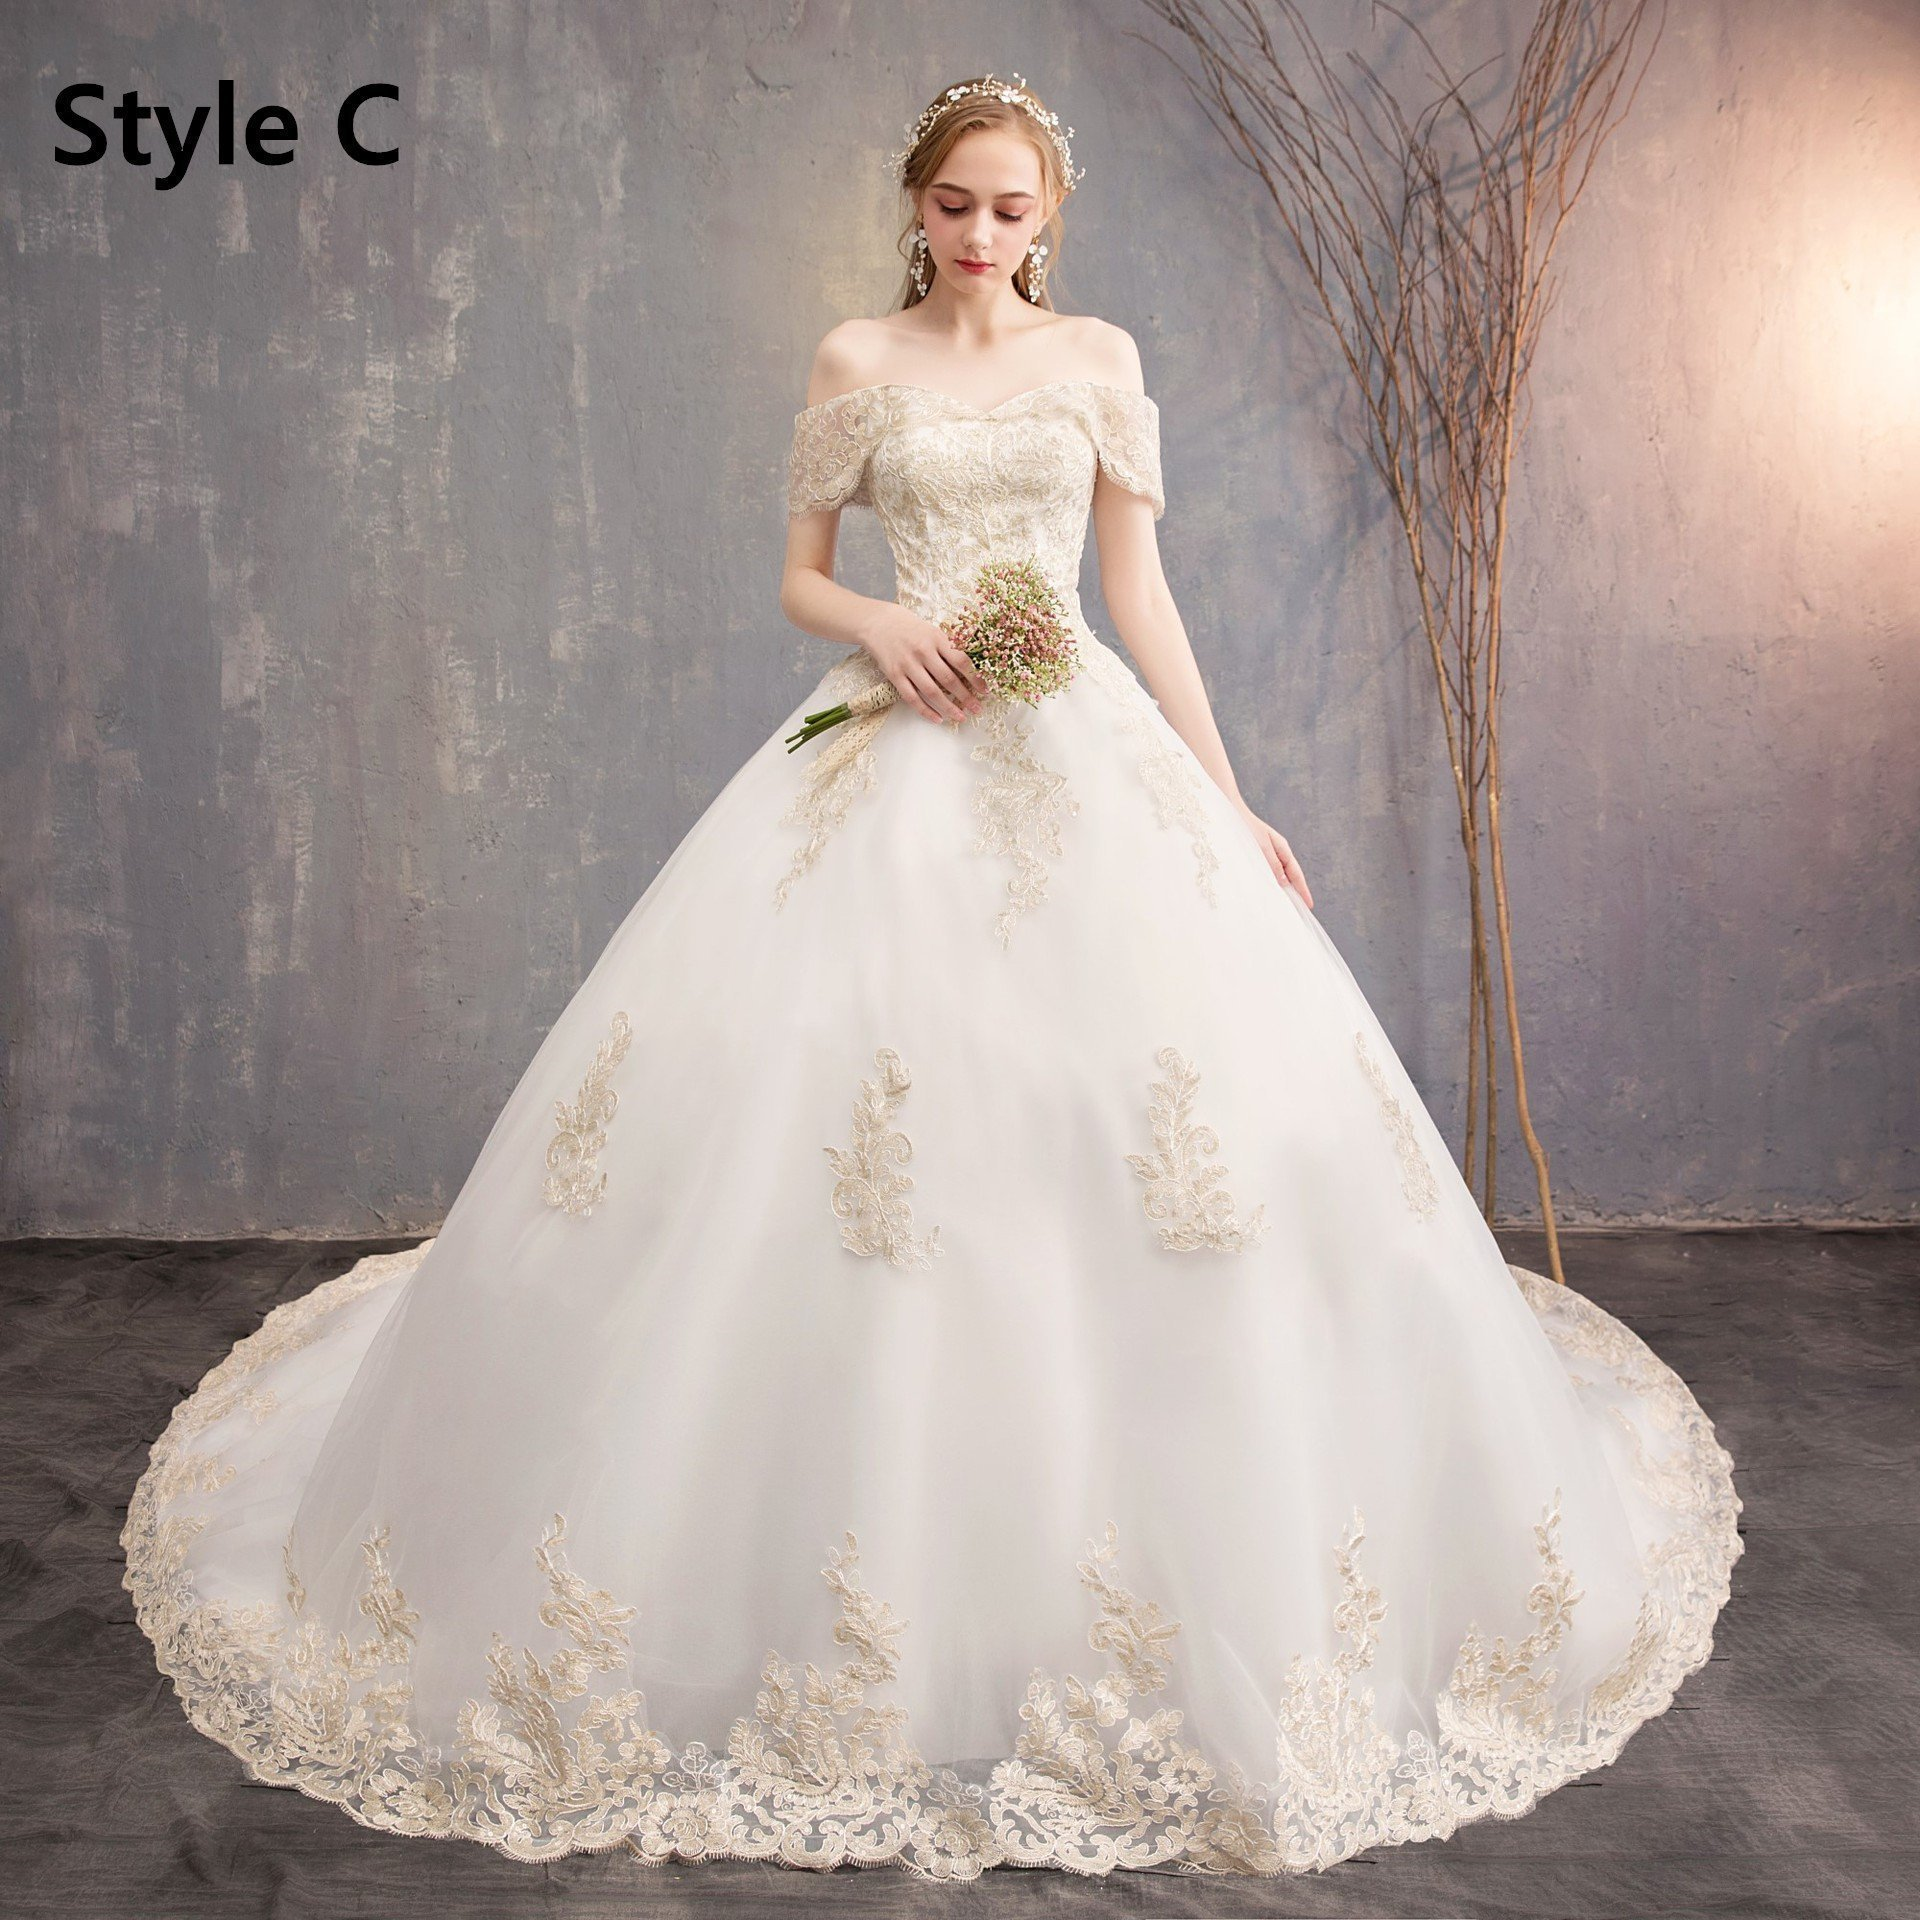 Best Wedding Dresses Lace Dresses Full Lace Dress Emerald Green Dress Wedding Guest Wear Dressy Lace A Line Wedding Dress Second Wedding Dresses Over 50